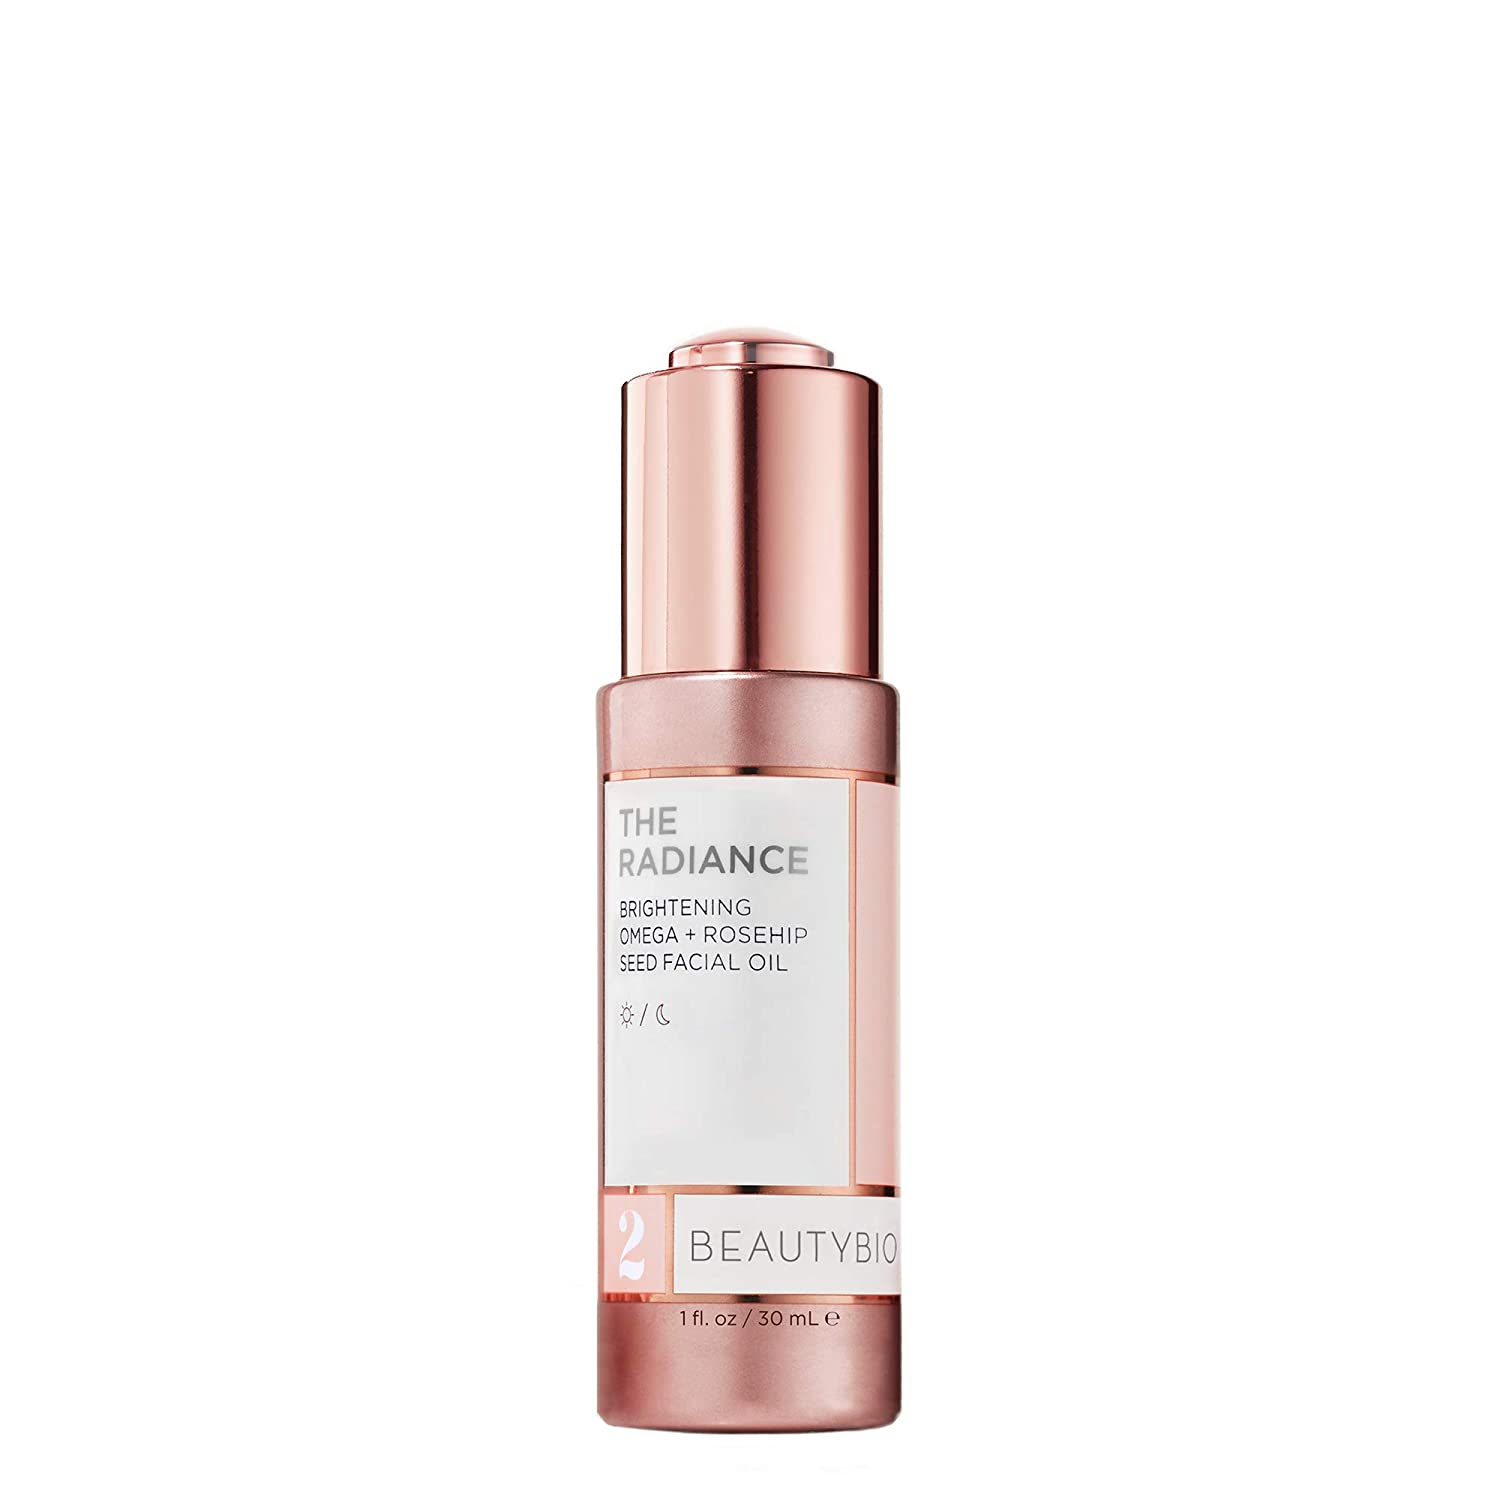 BeautyBio The Radiance Brightening Omega Plus Rosesip Seed Facial Oil